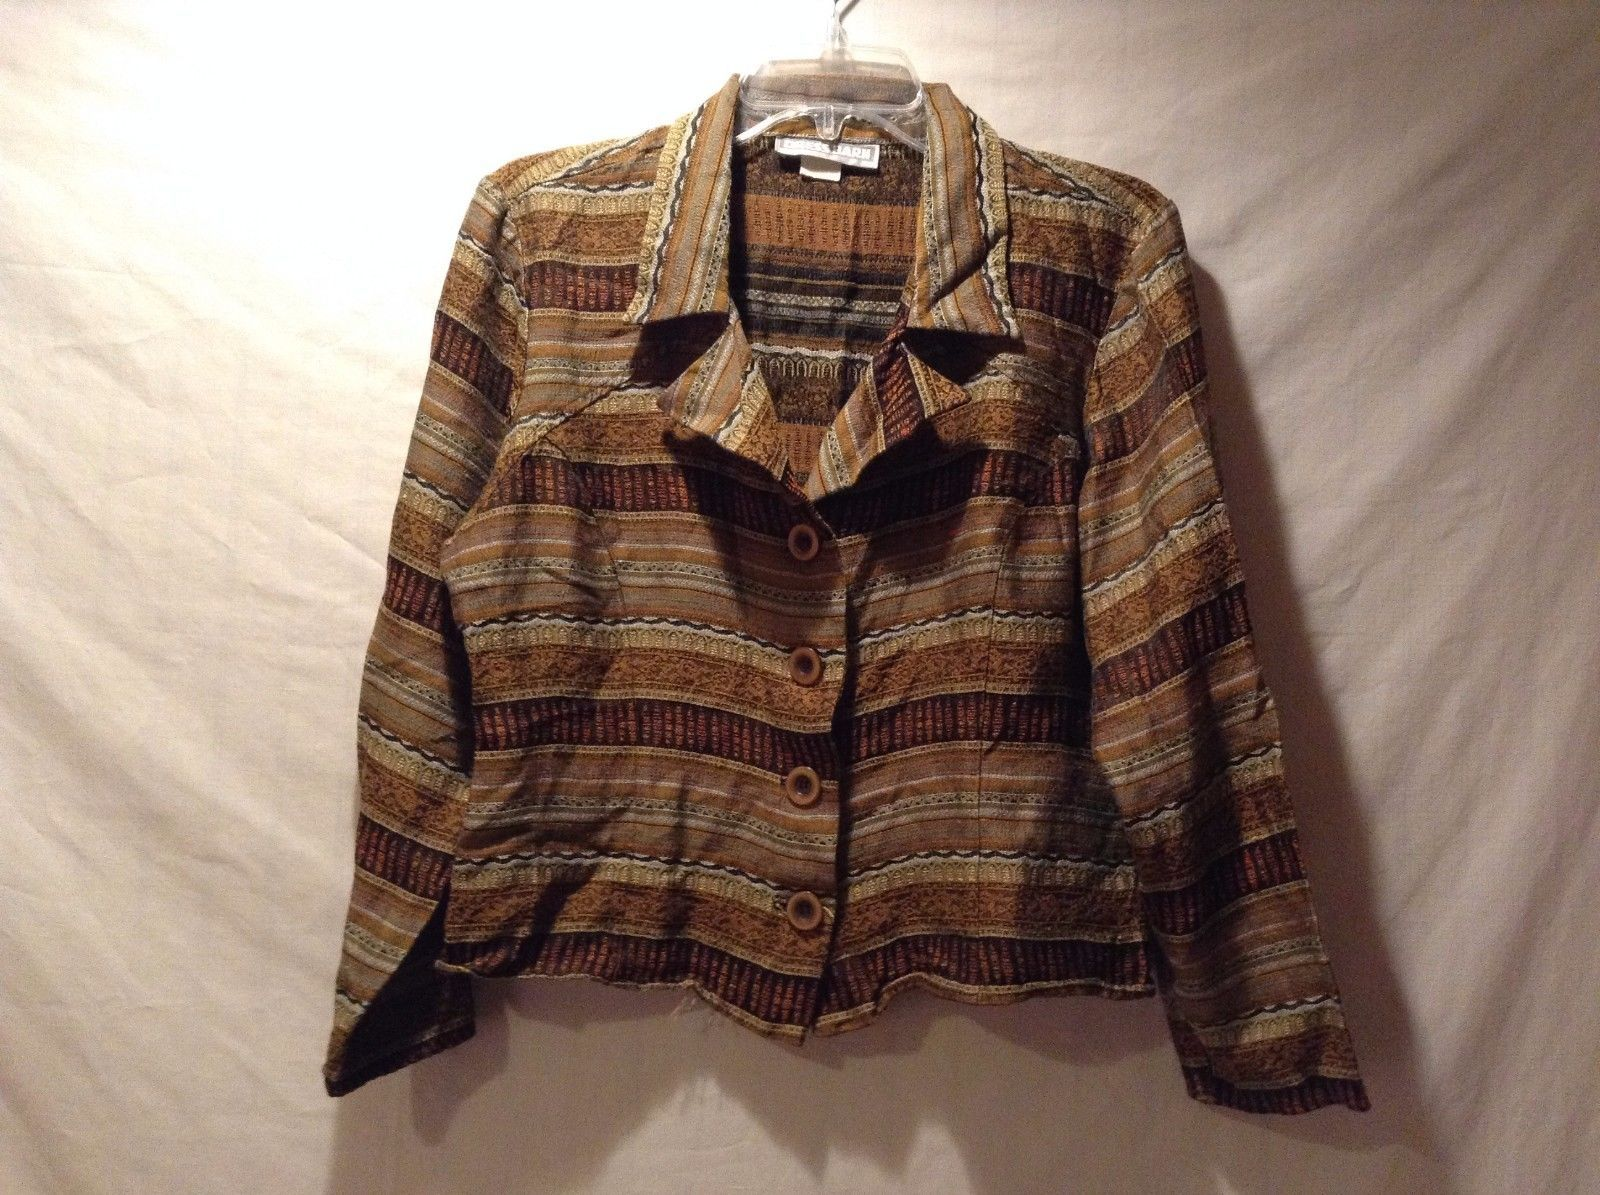 Used Great Condition Dress Barn Brown and Tan Long Sleeve Cardigan Jacket Cotton